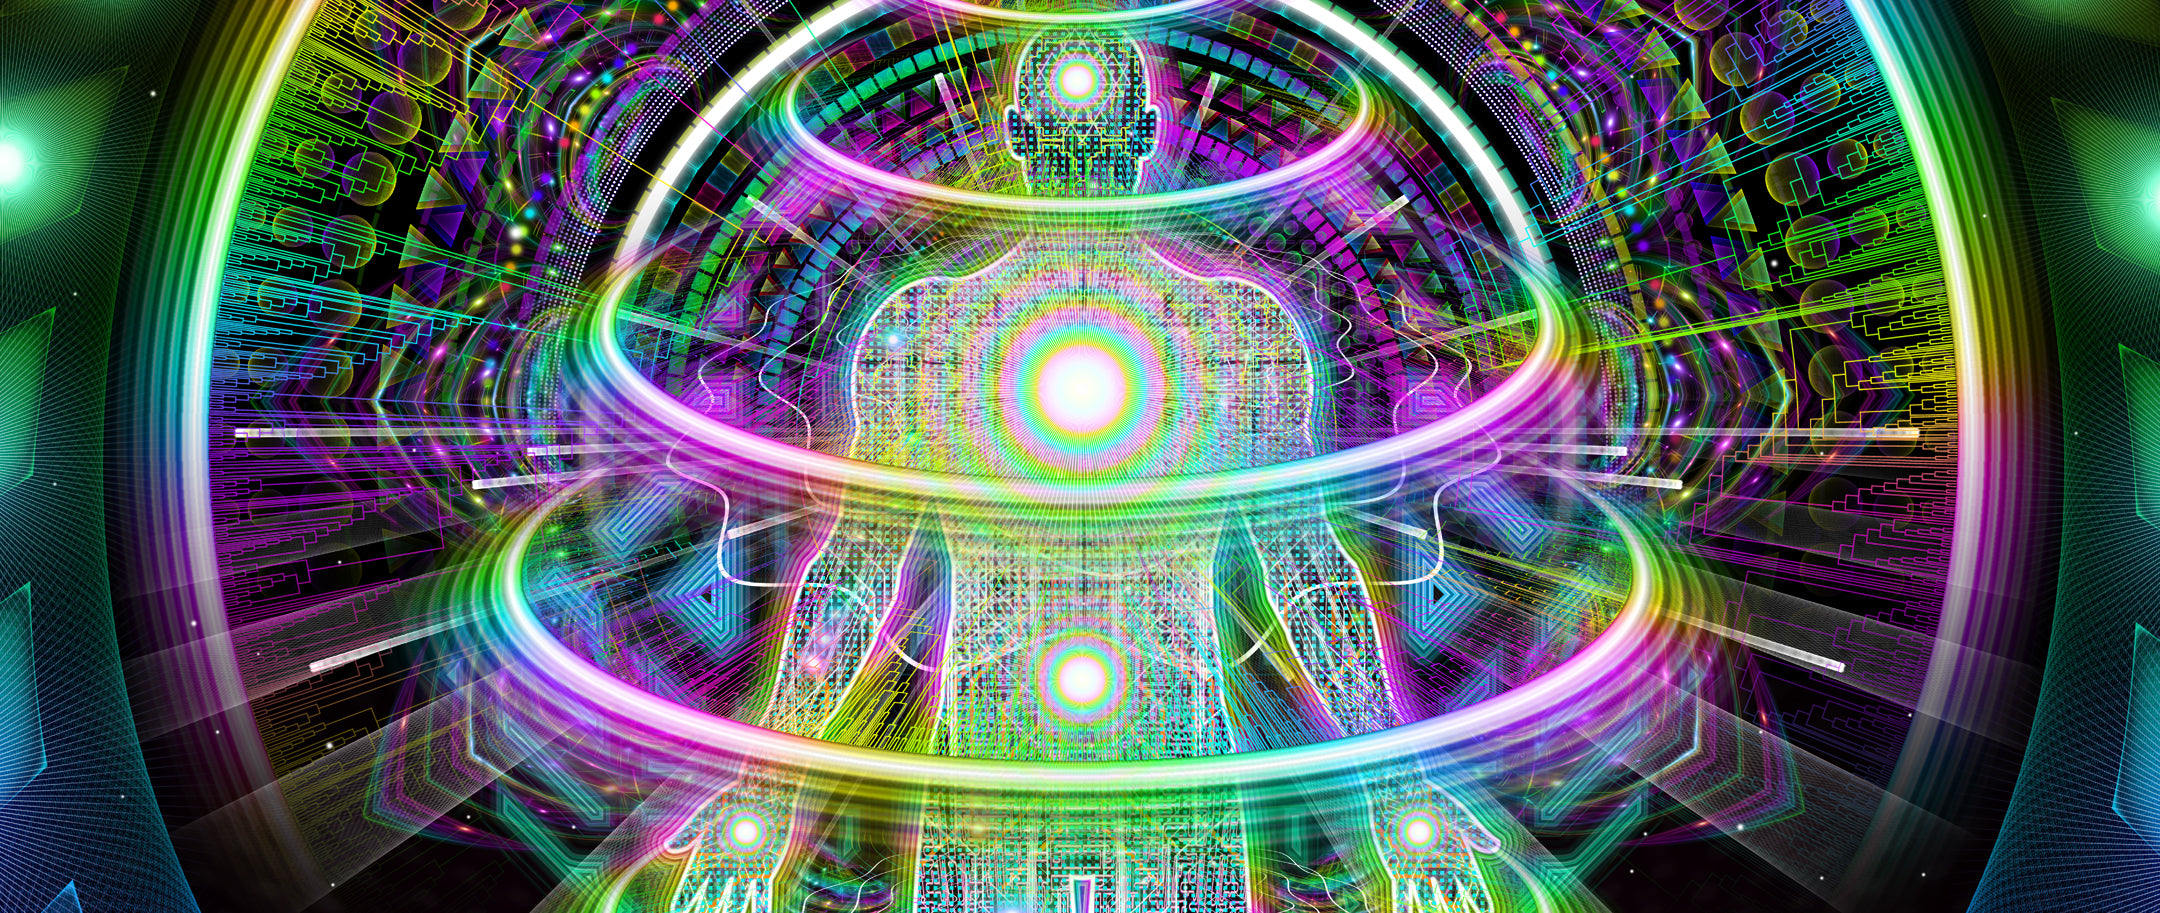 Launch Pad: Psychedelic Art depicting our Energy Body